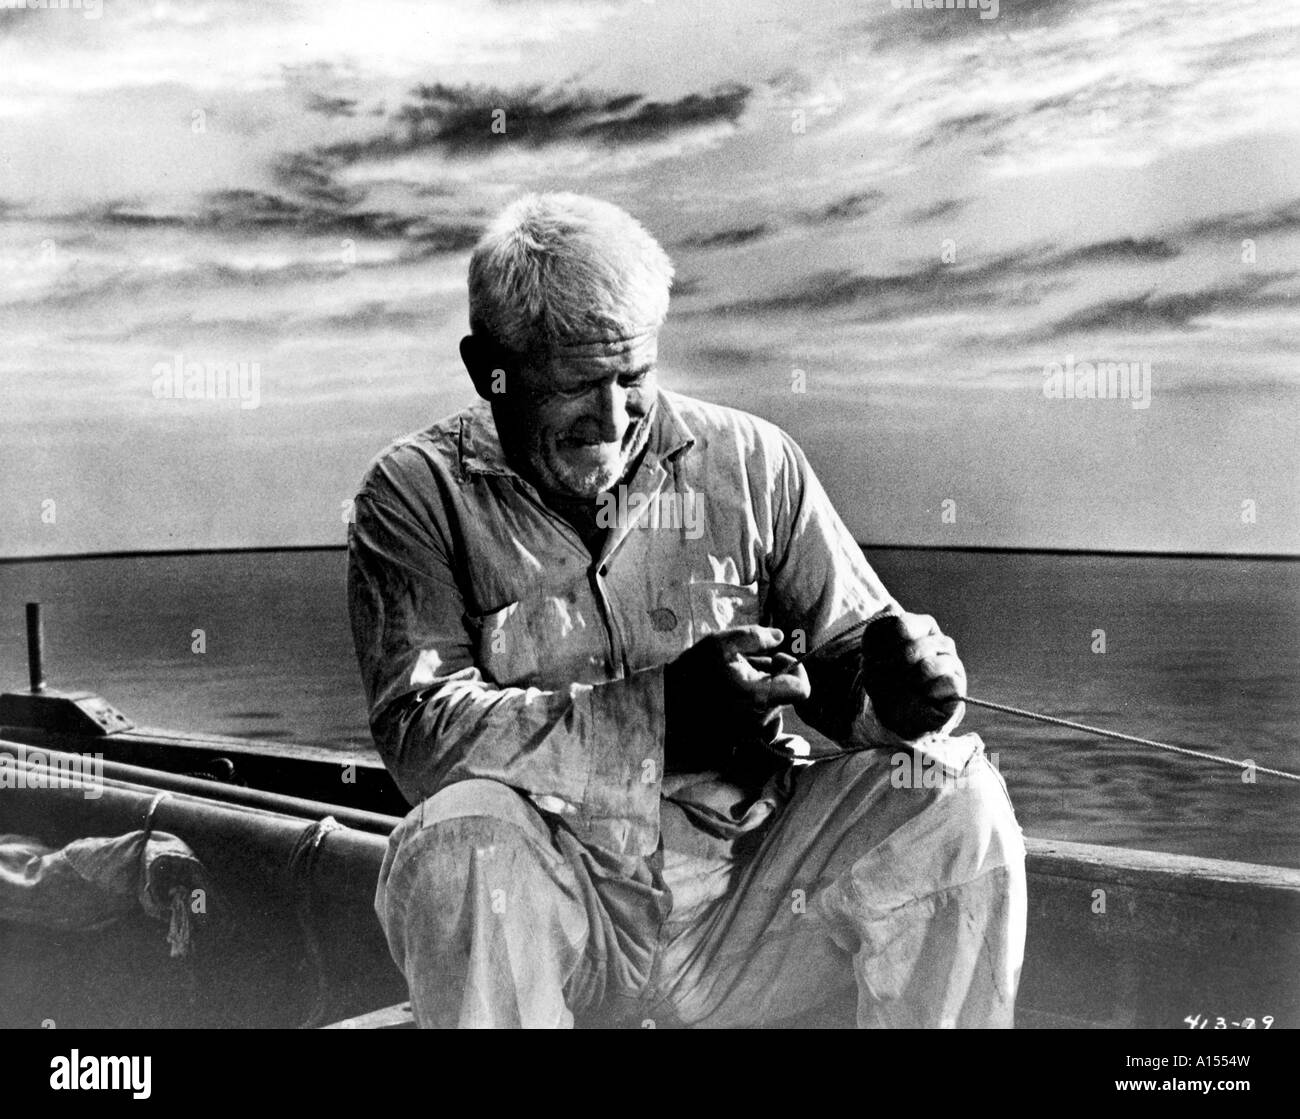 the old man and the sea The old man and the sea is a story of an lod cuban fisherman, a young boy and a giant fish far out in the gulf stream off the coast of havana.